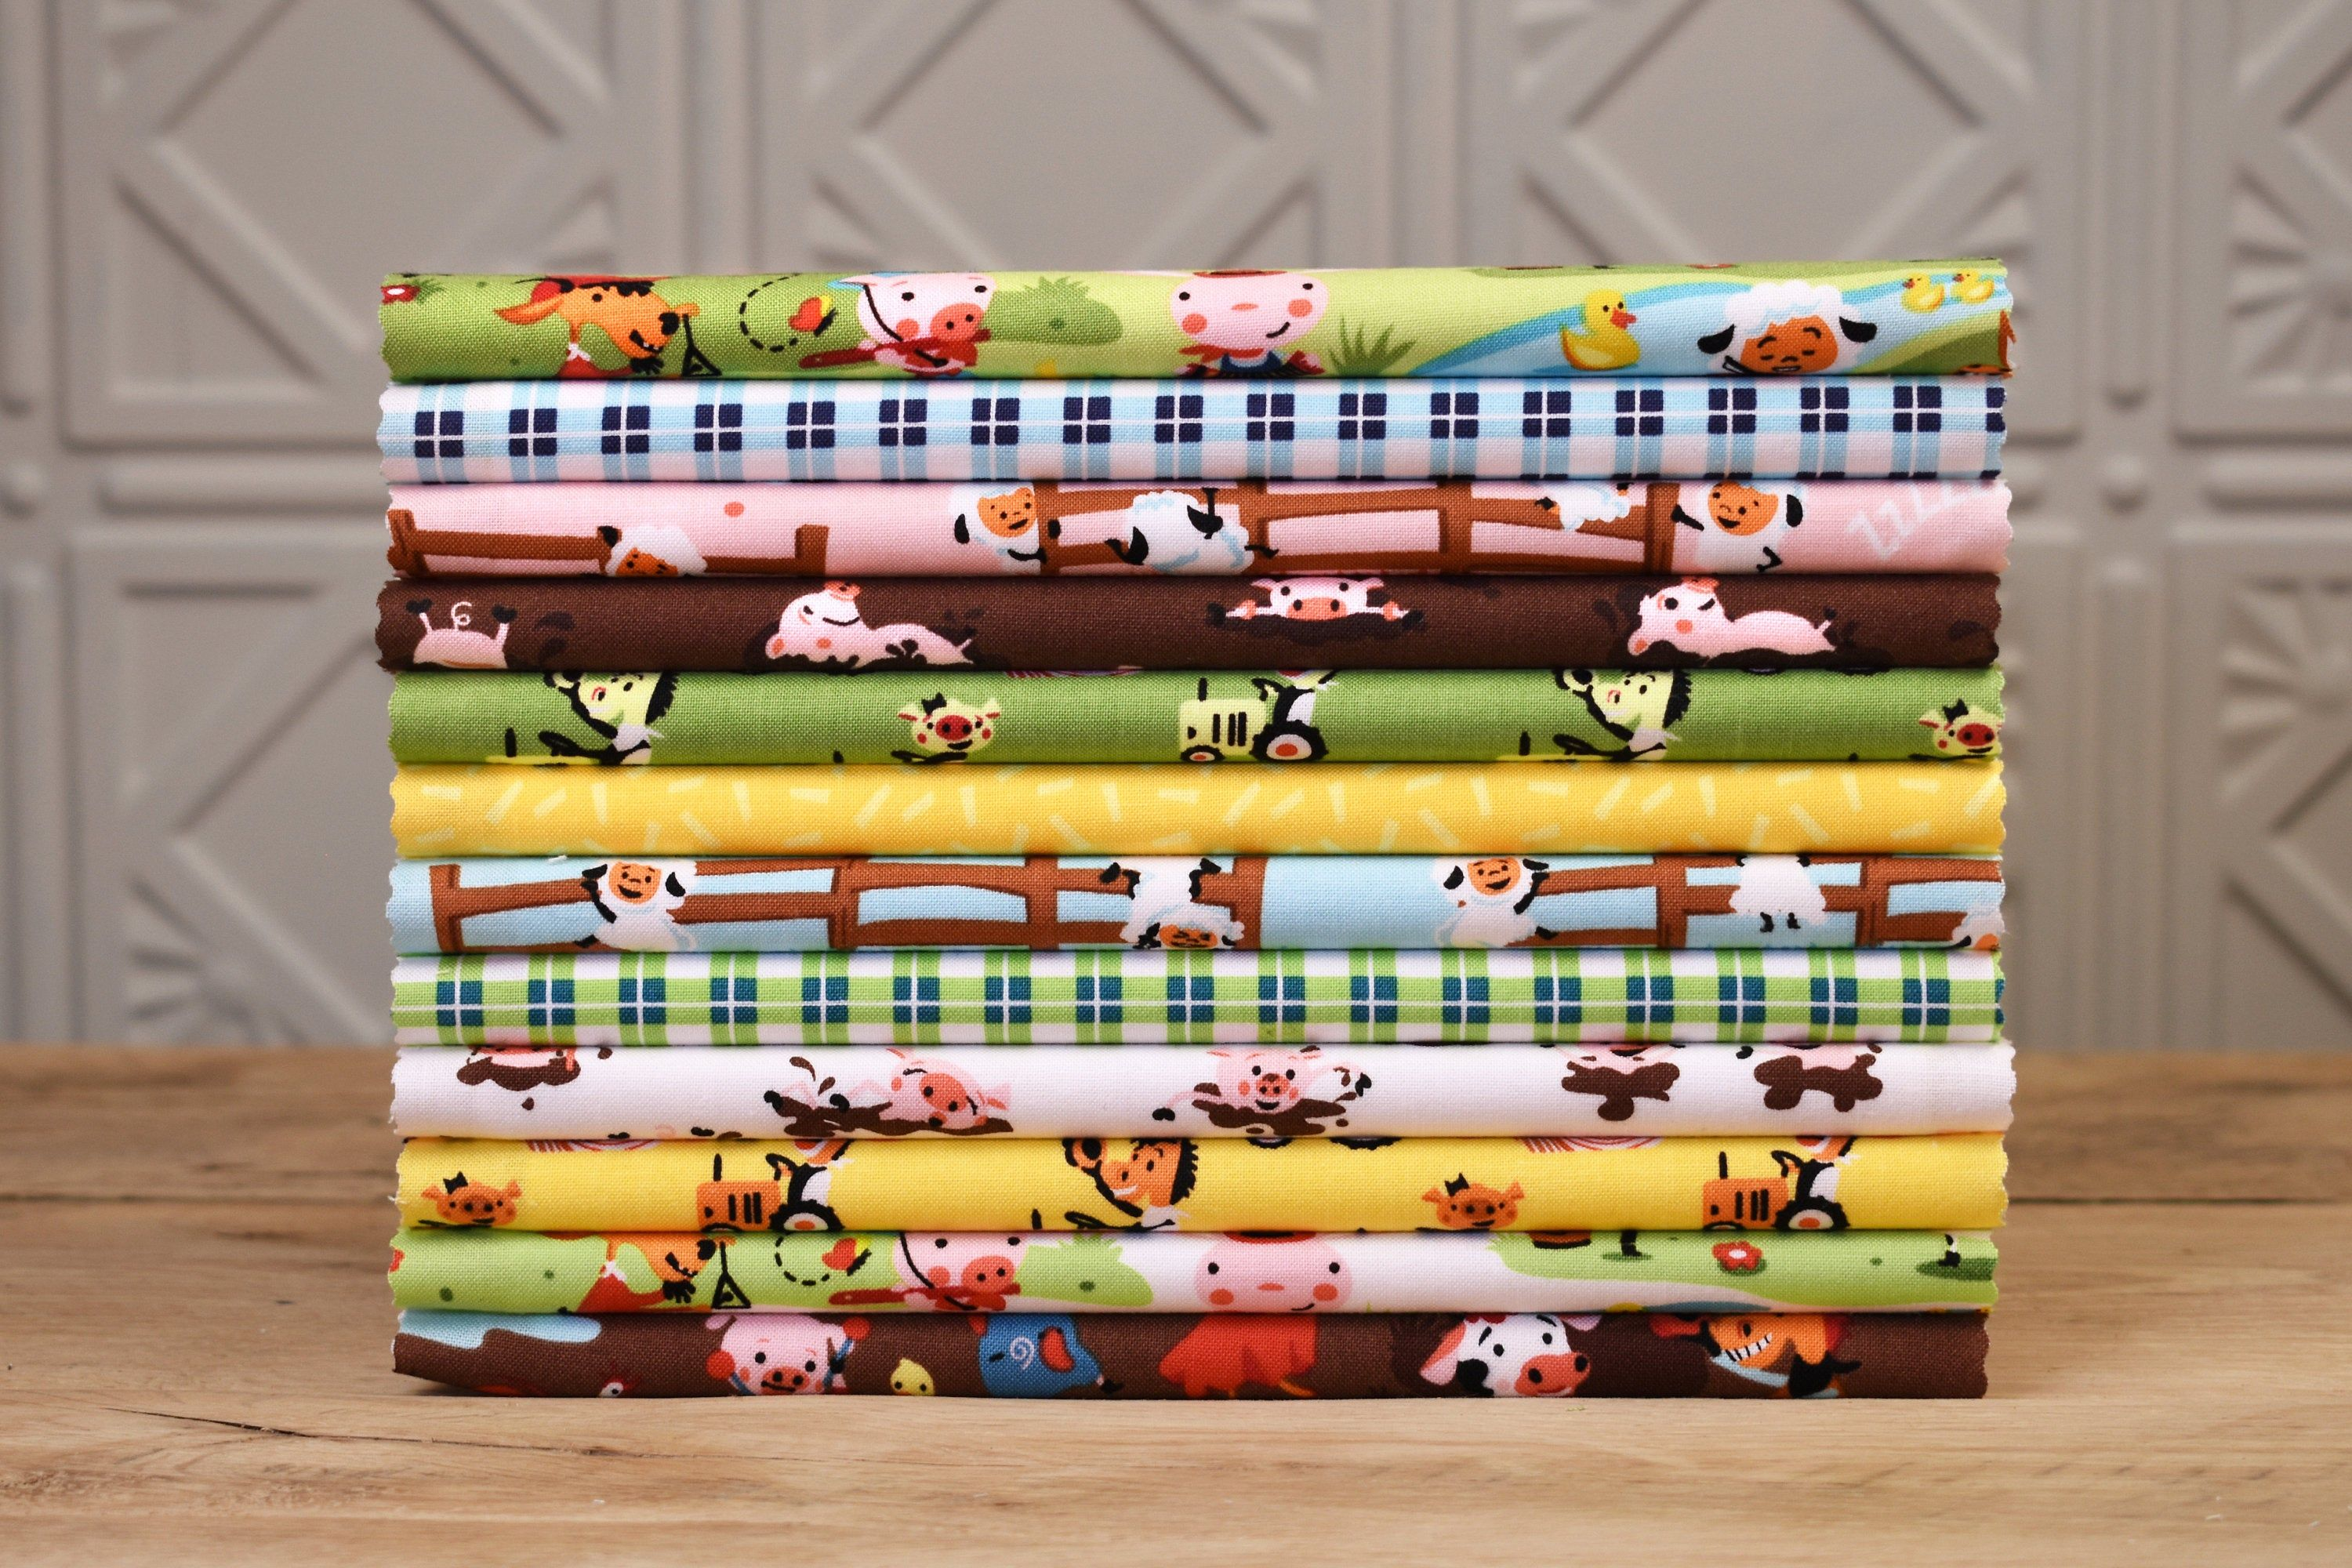 Precut Quilt Kit Top Only Farm Animal Theme Quilting Cotton Fabric From Riley Blake Instructions For Quilt Top Included Quilt Kit Quilt Kits Precut Quilts